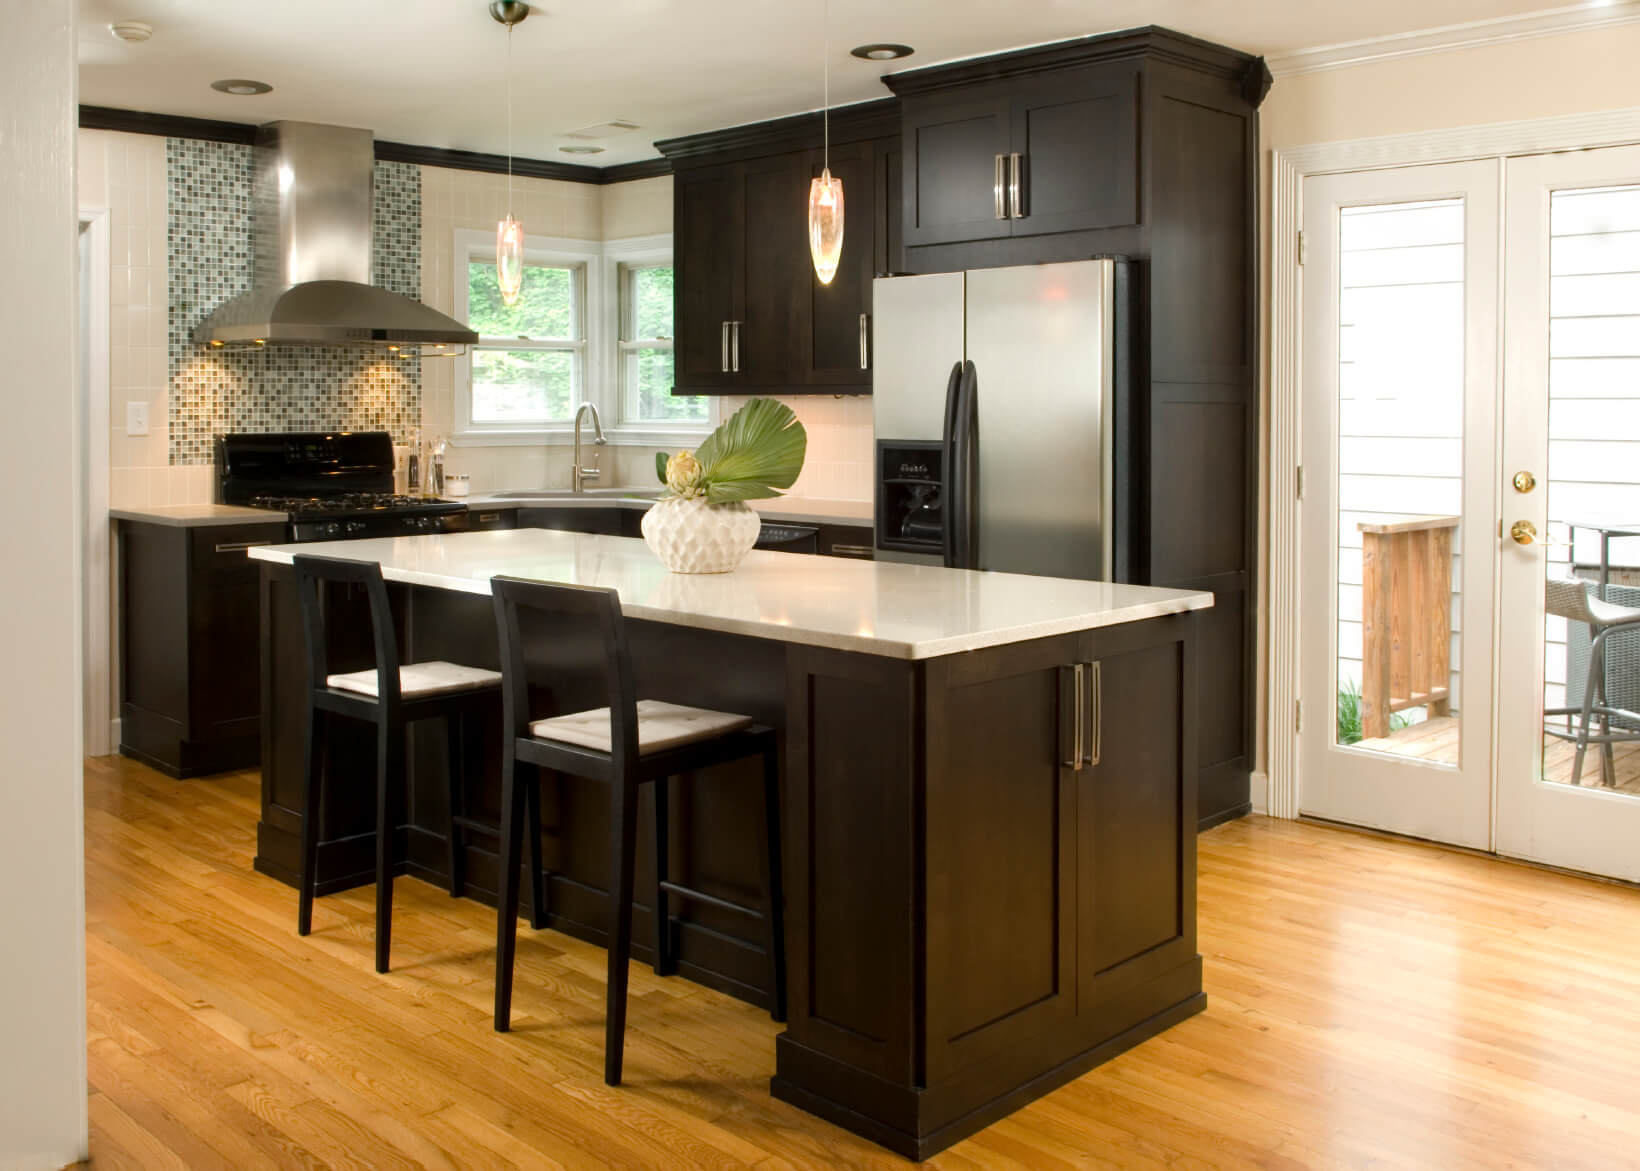 Kitchen Ideas With Dark Hardwood Floors 52 dark kitchens with dark wood and black kitchen cabinets